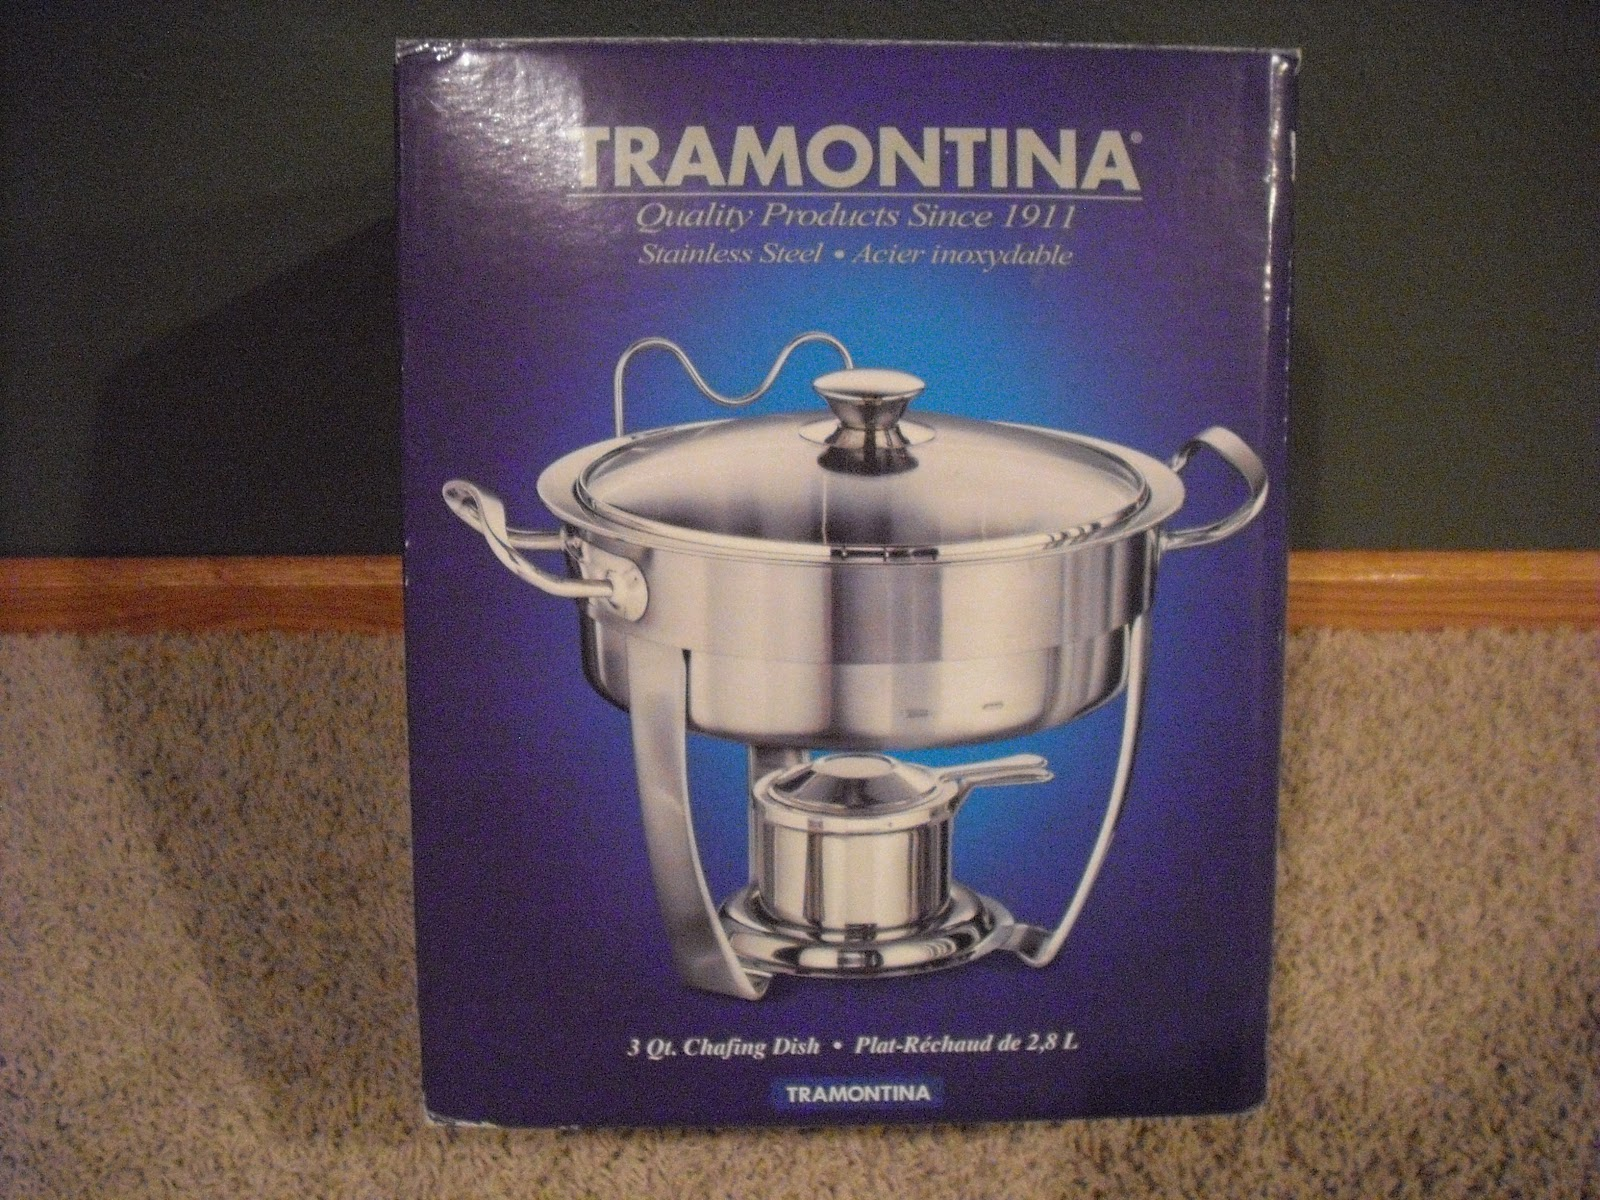 The 3 Quart Round Chafing Dish From Tramontina Has A Clear Tempered Gl Lid And Base Pan 4 75